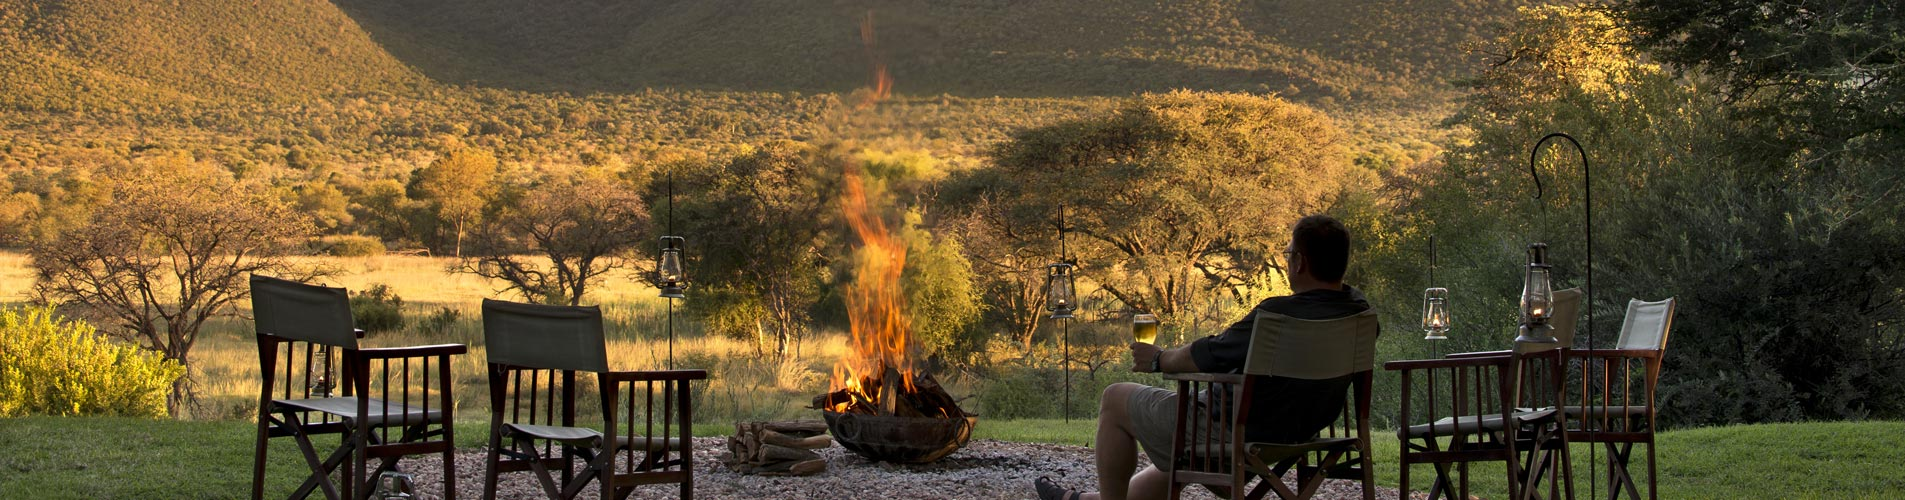 Custom African Safaris, Marataba View